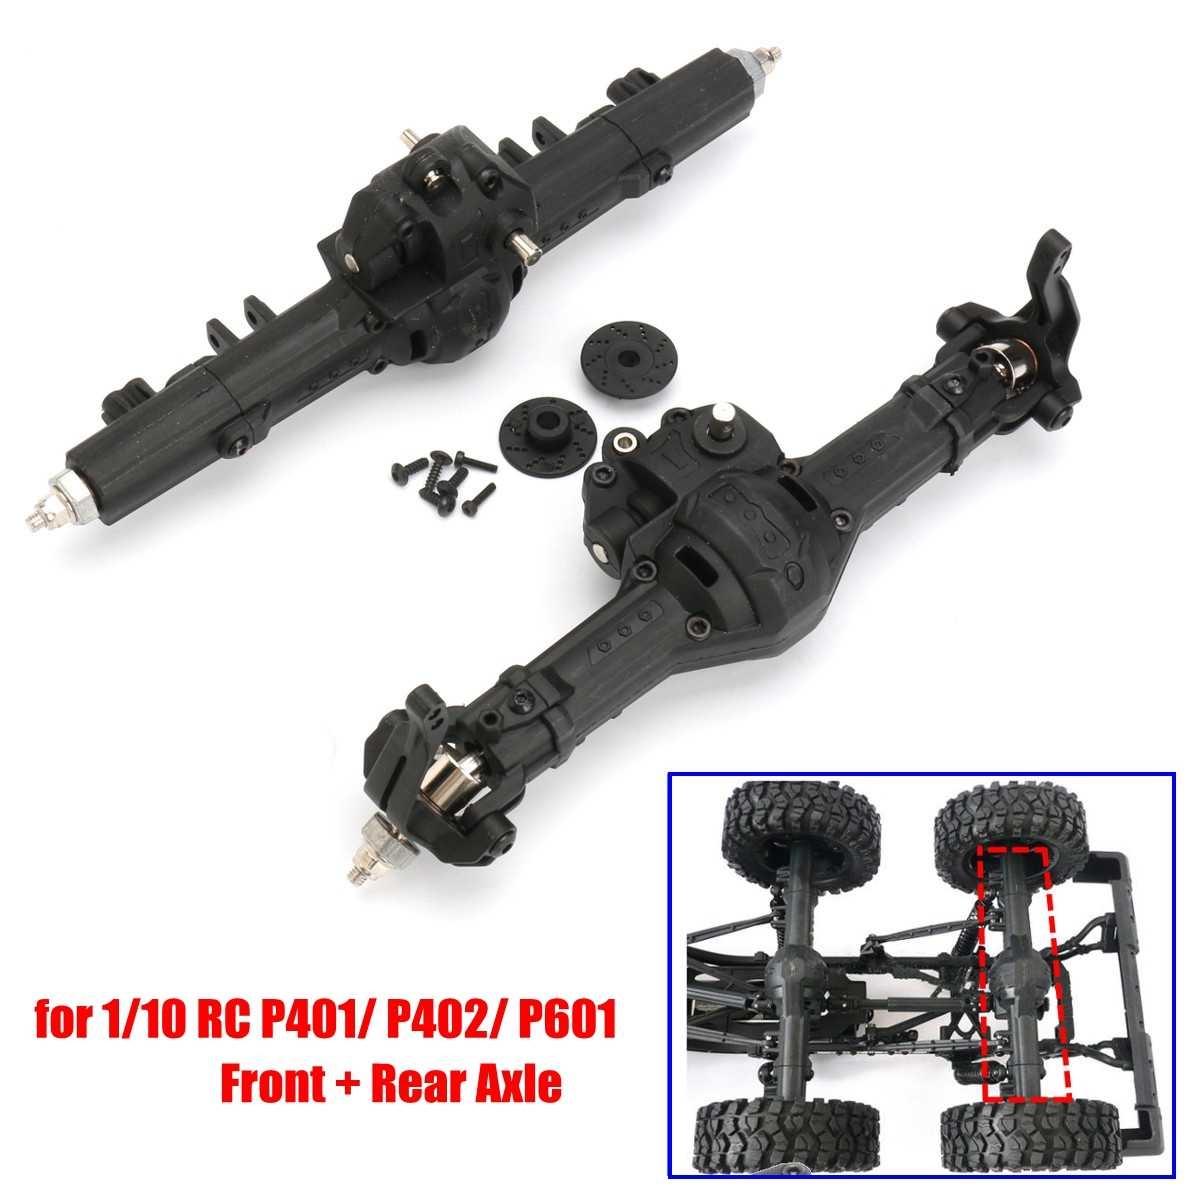 Voor En Achter Gear Box Set Voor 1/10 RC As HG P401/P402/P601 Crawler Truck Auto HG-BX02 1/10 HG RC Off Road Auto Onderdelen F + R As